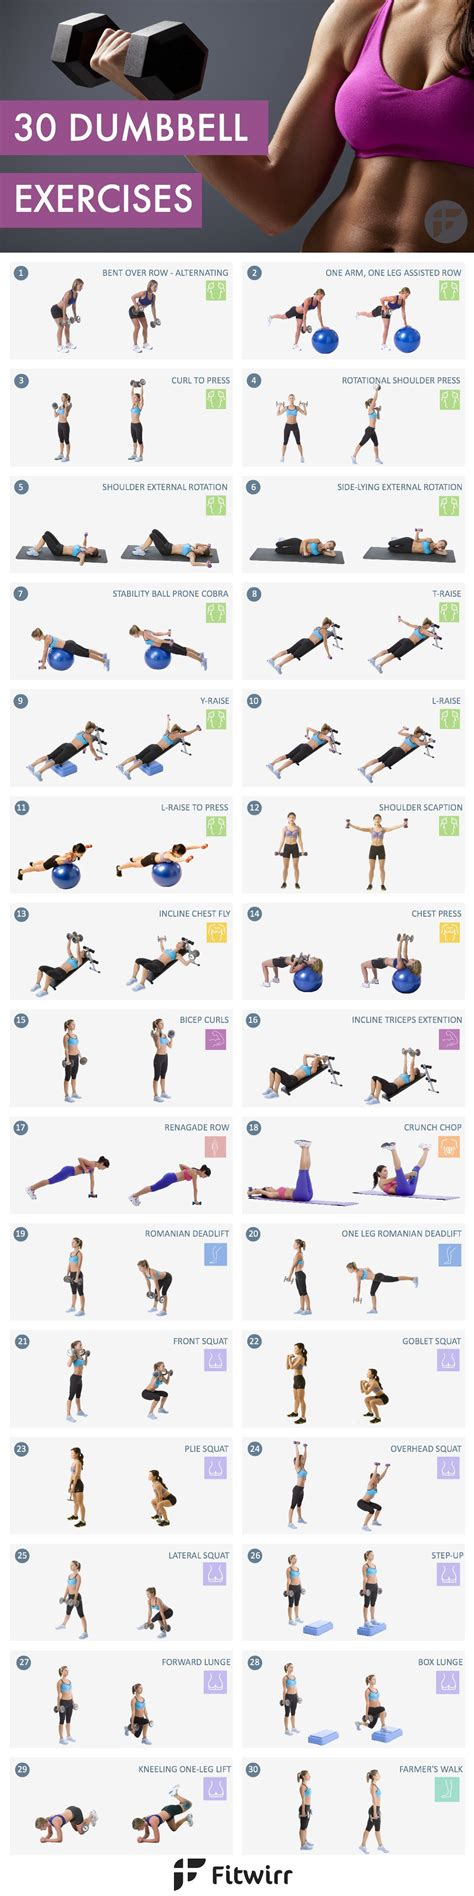 30 must dumbbell exercises for workouts at home